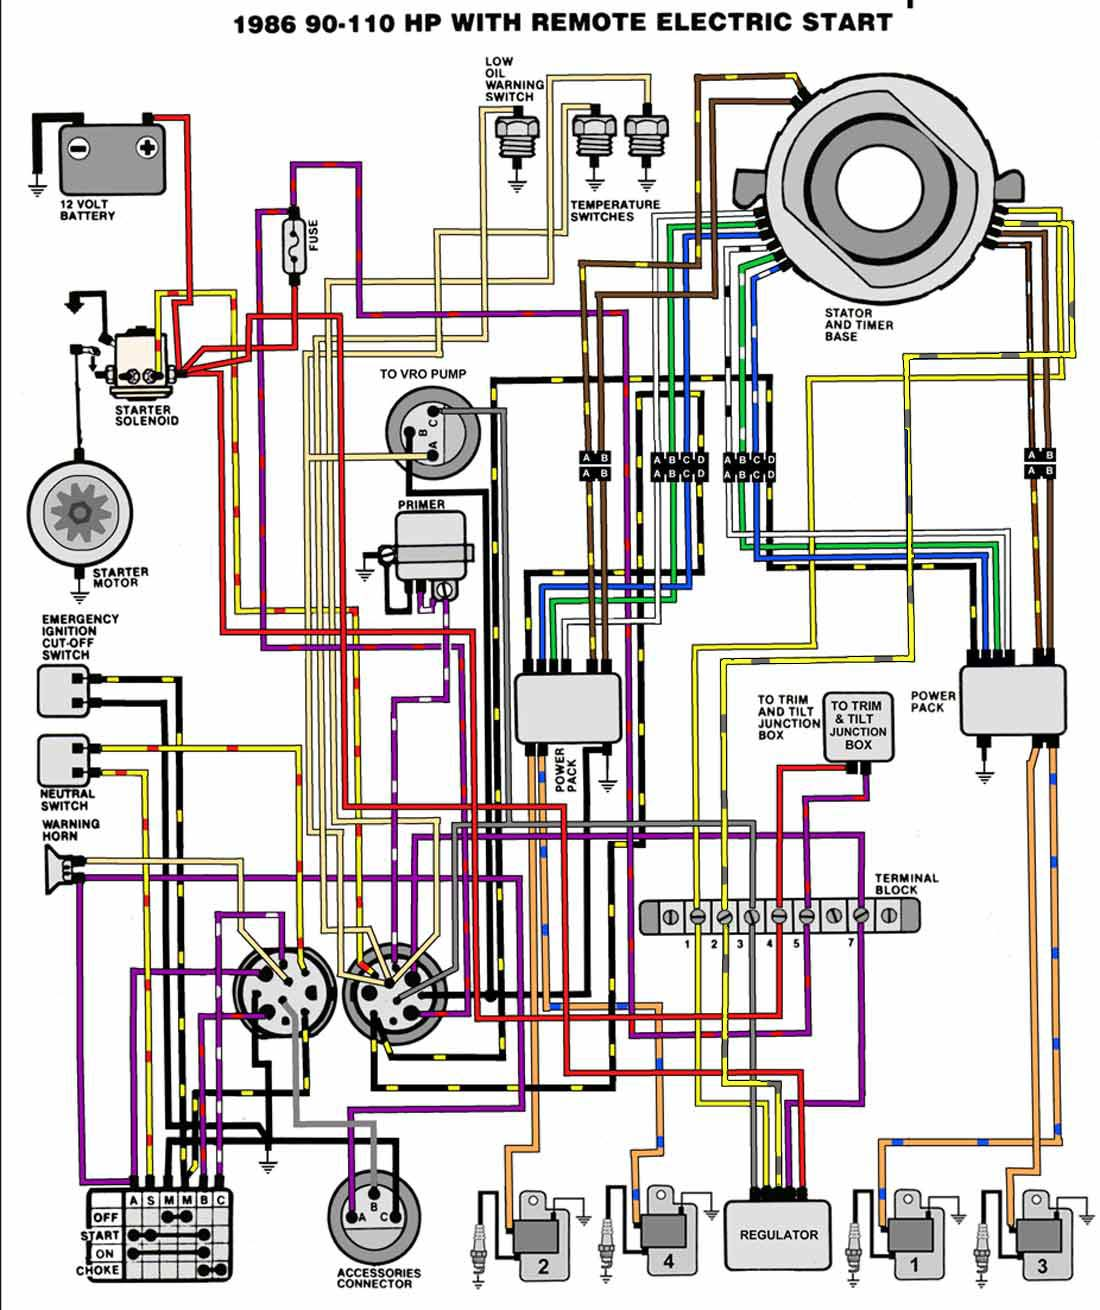 1986_90_115?resize=680%2C810 wiring diagram 1977 johnson johnson switch diagram, johnson  at soozxer.org